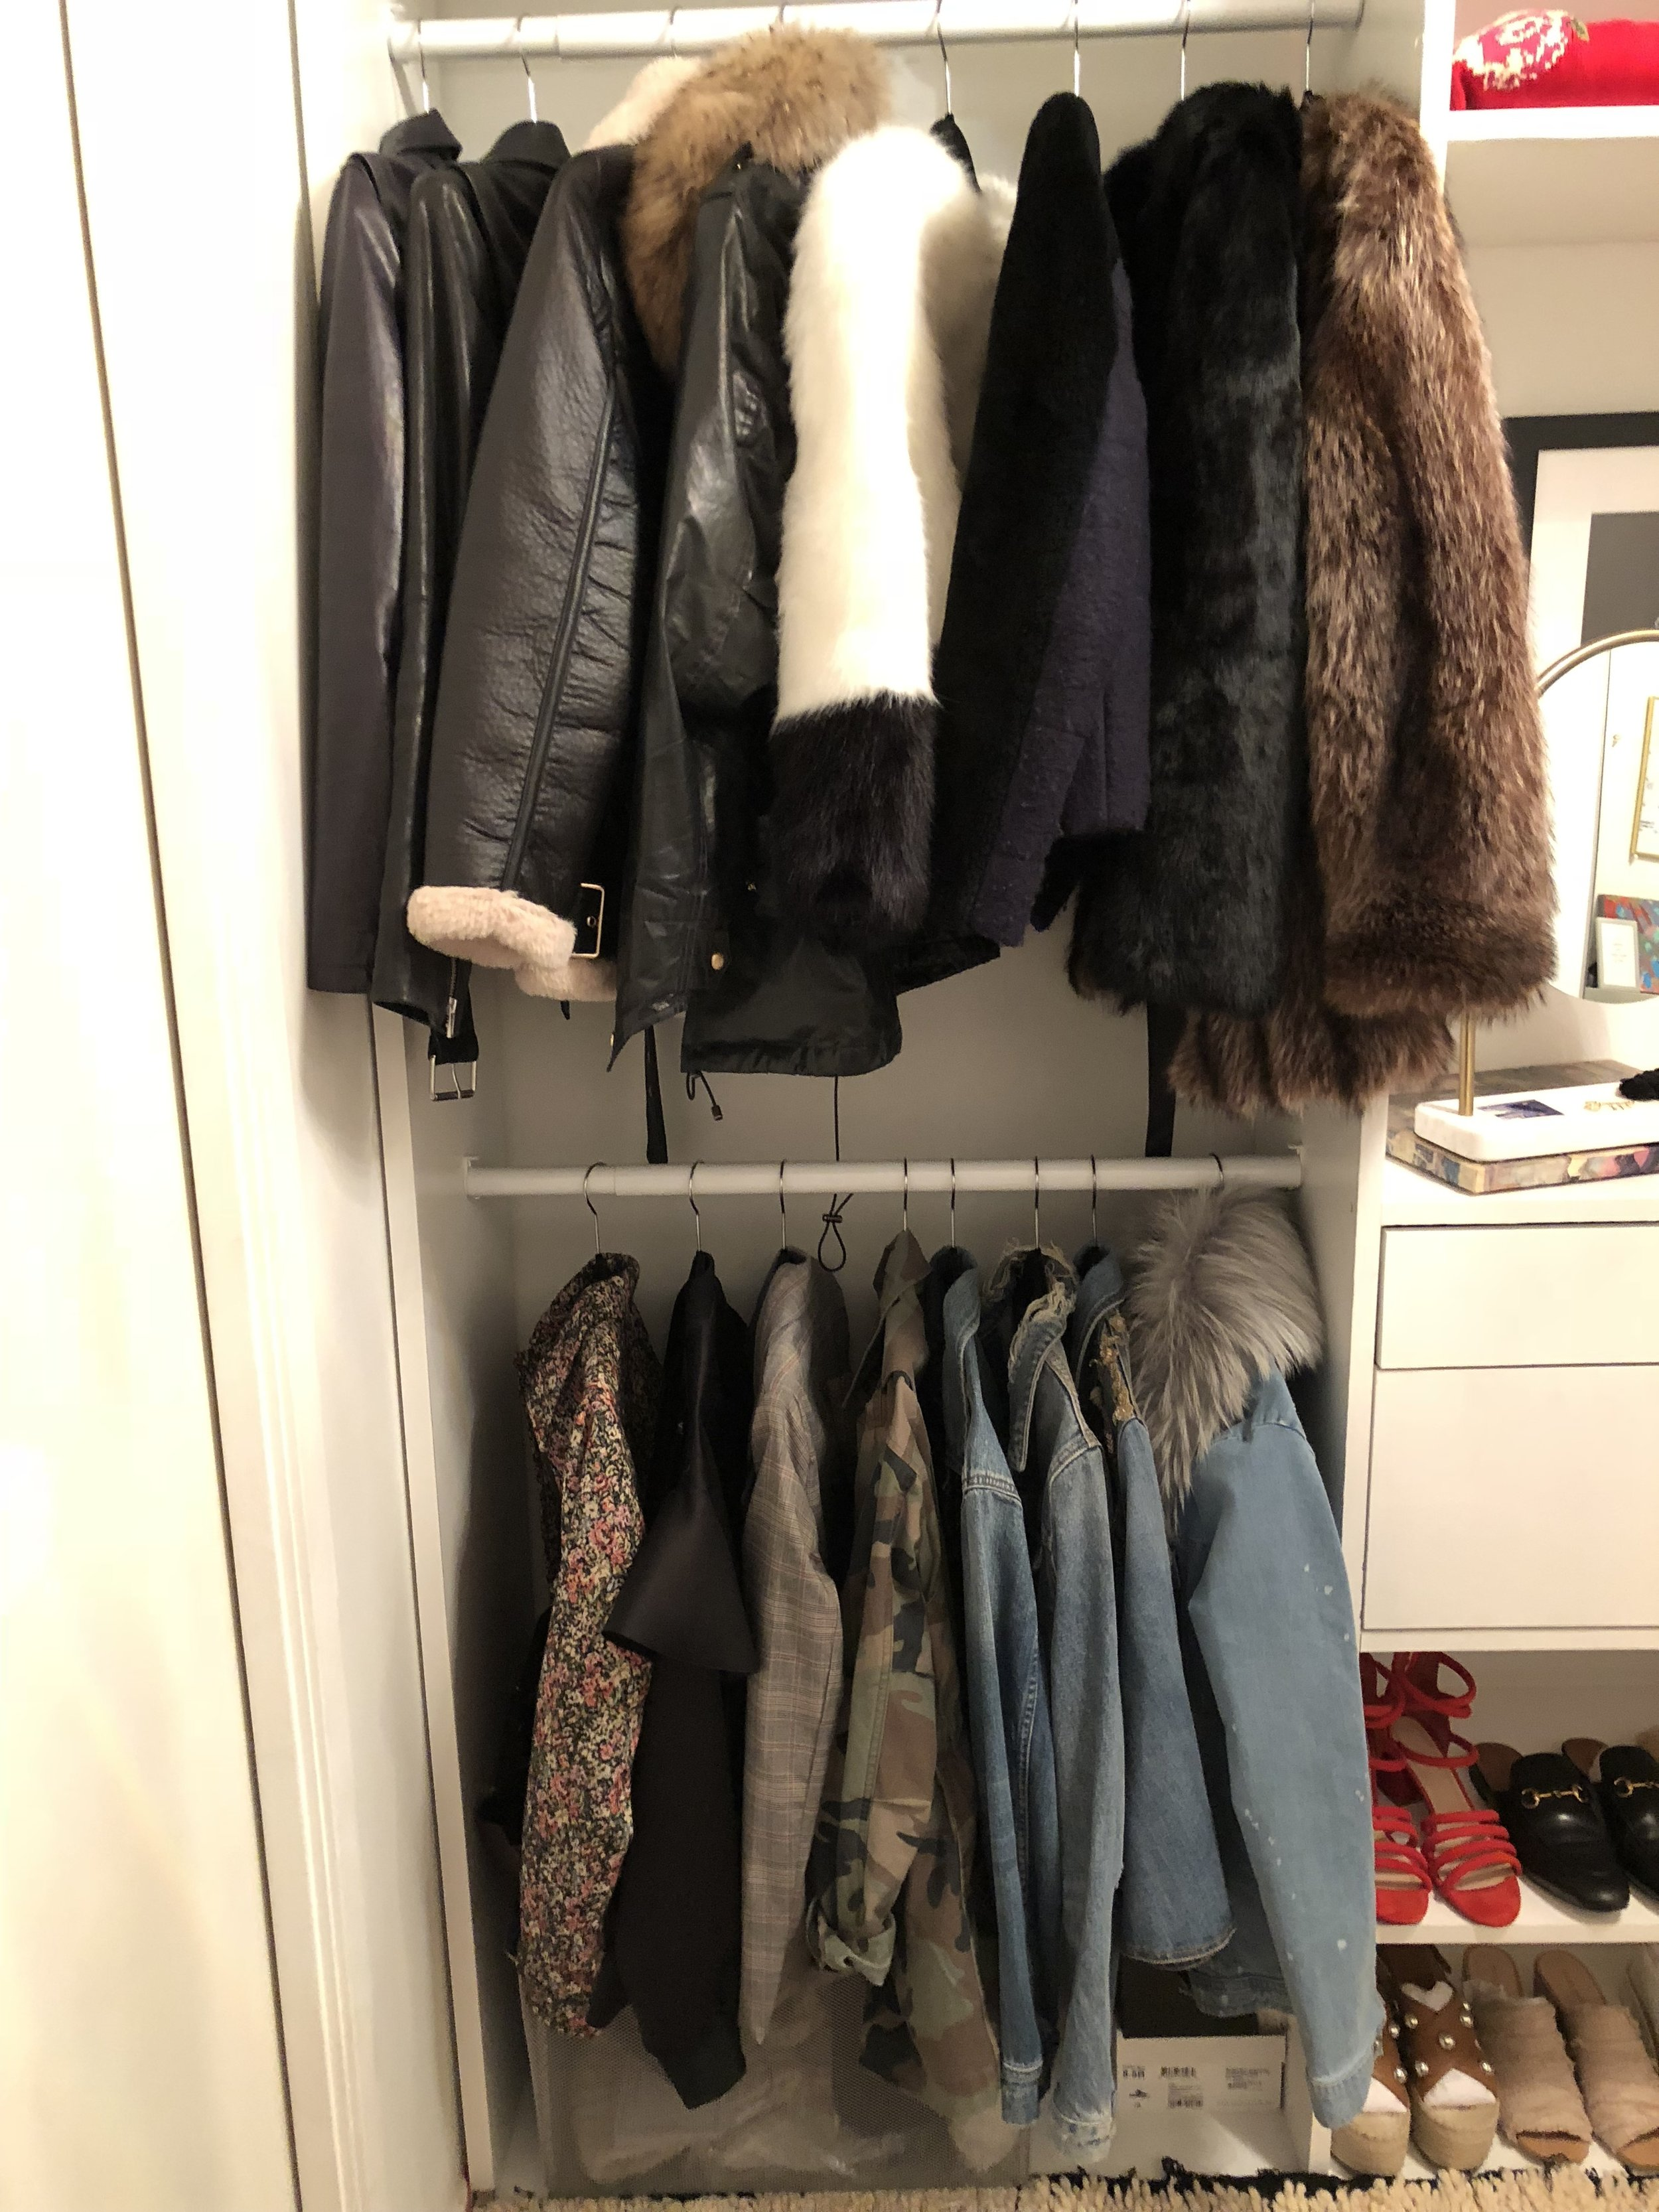 jackets in closet